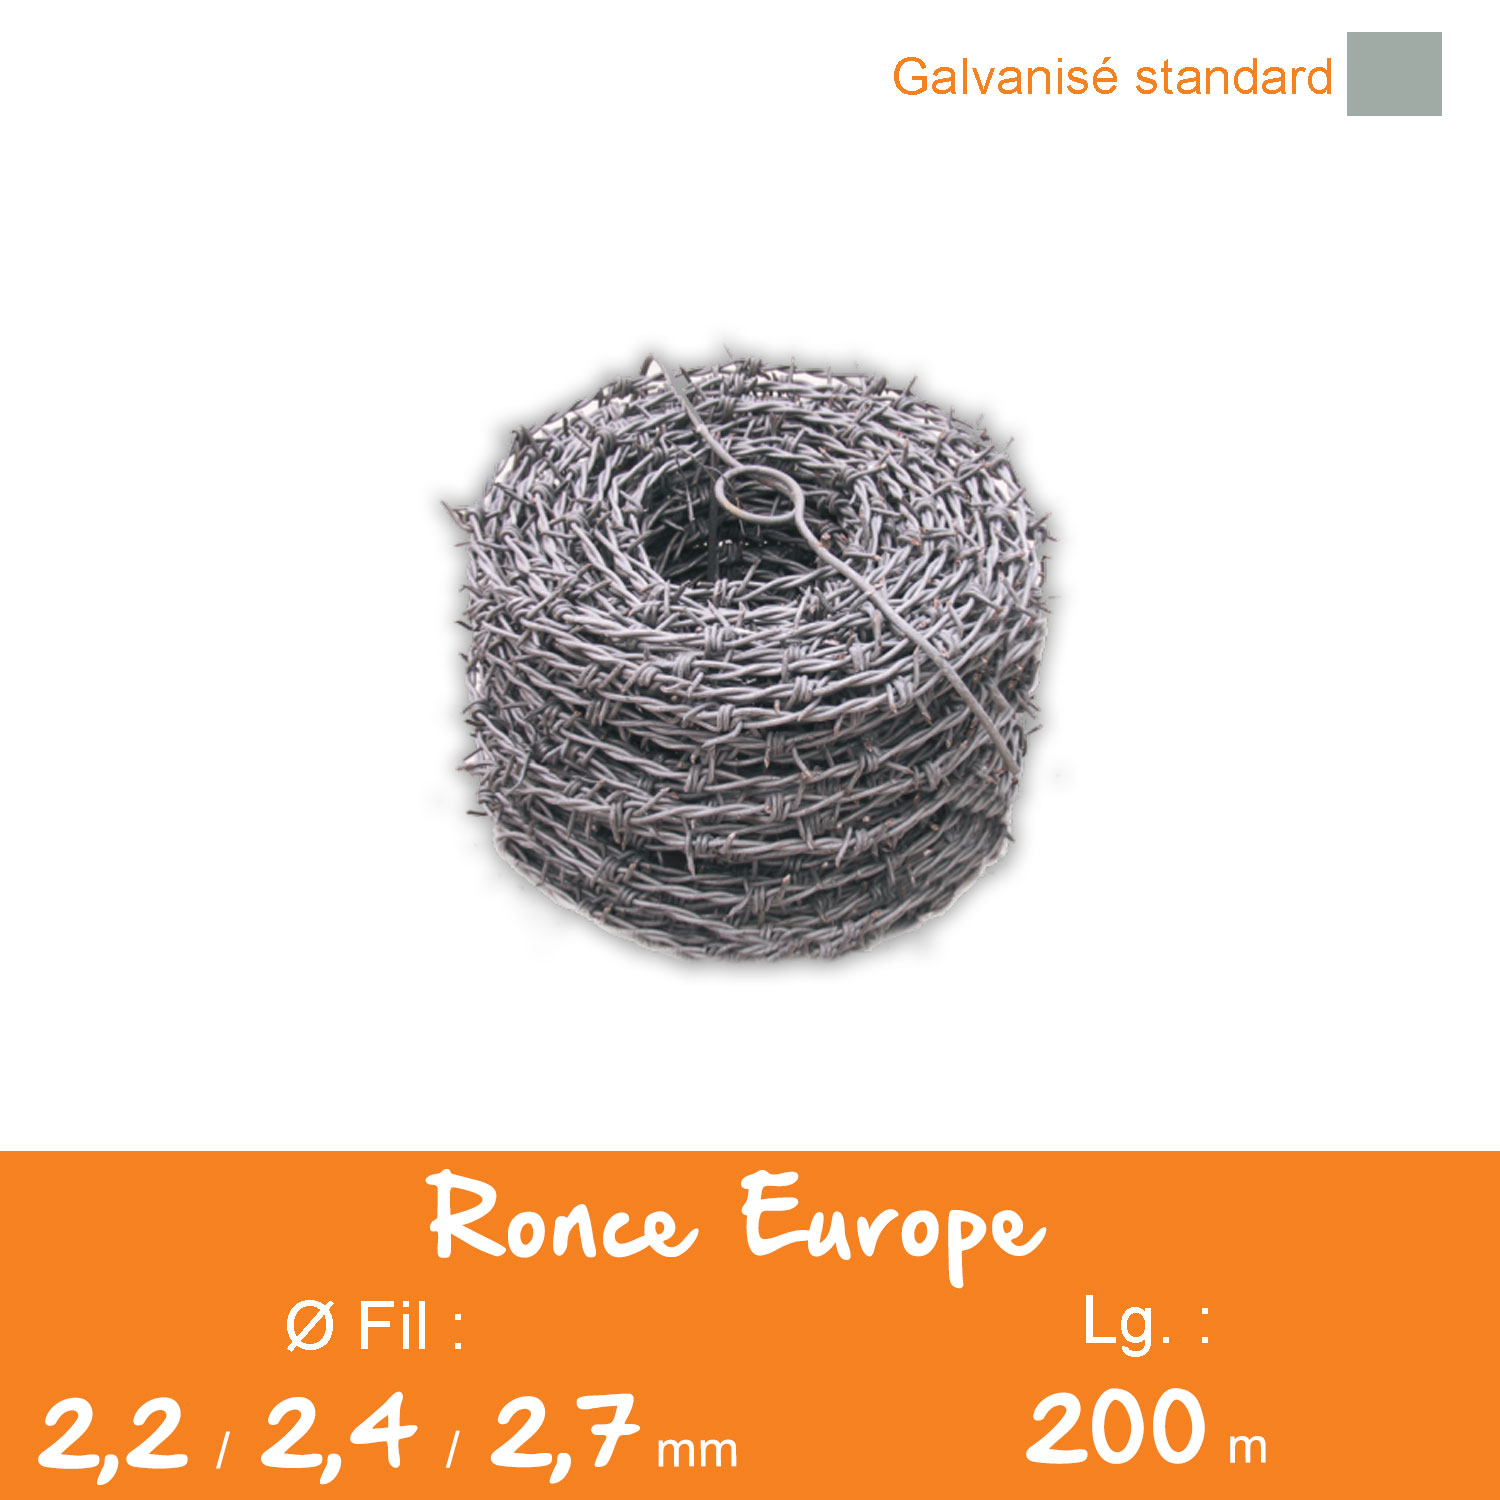 Ronce Europe galvanisée standard